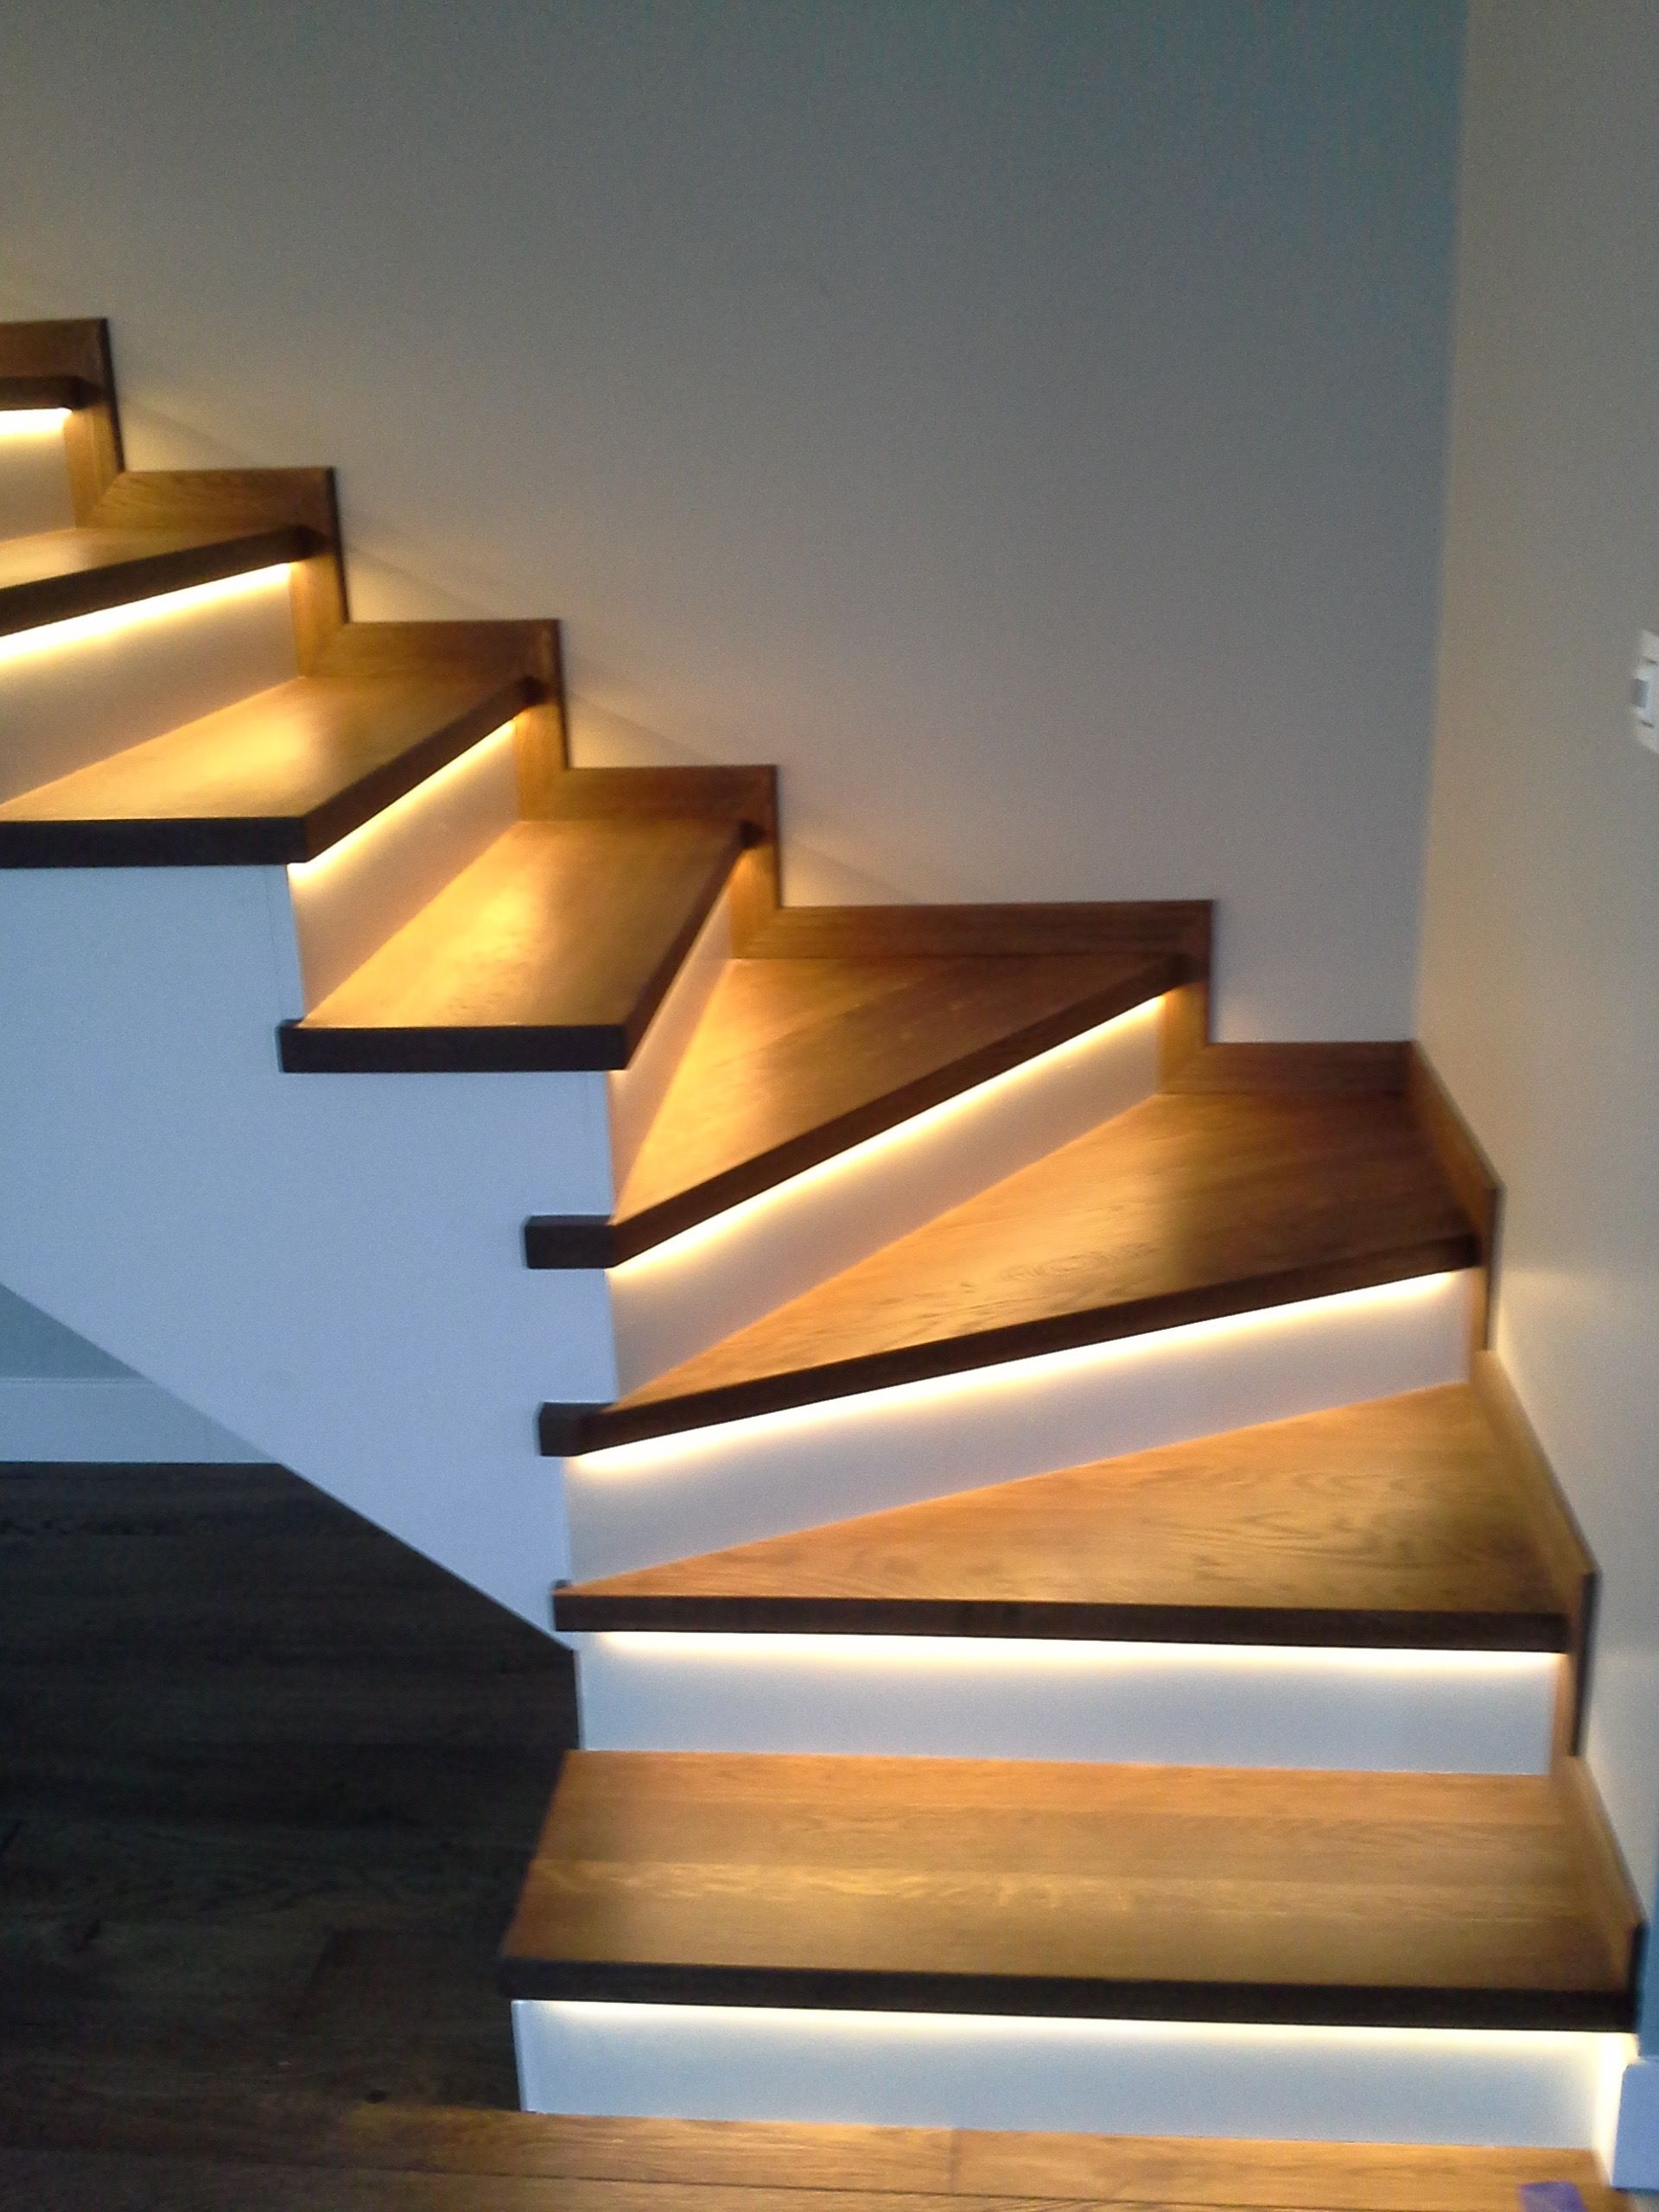 Stair lighting interior design basement house railing stairs also best way images in rh pinterest